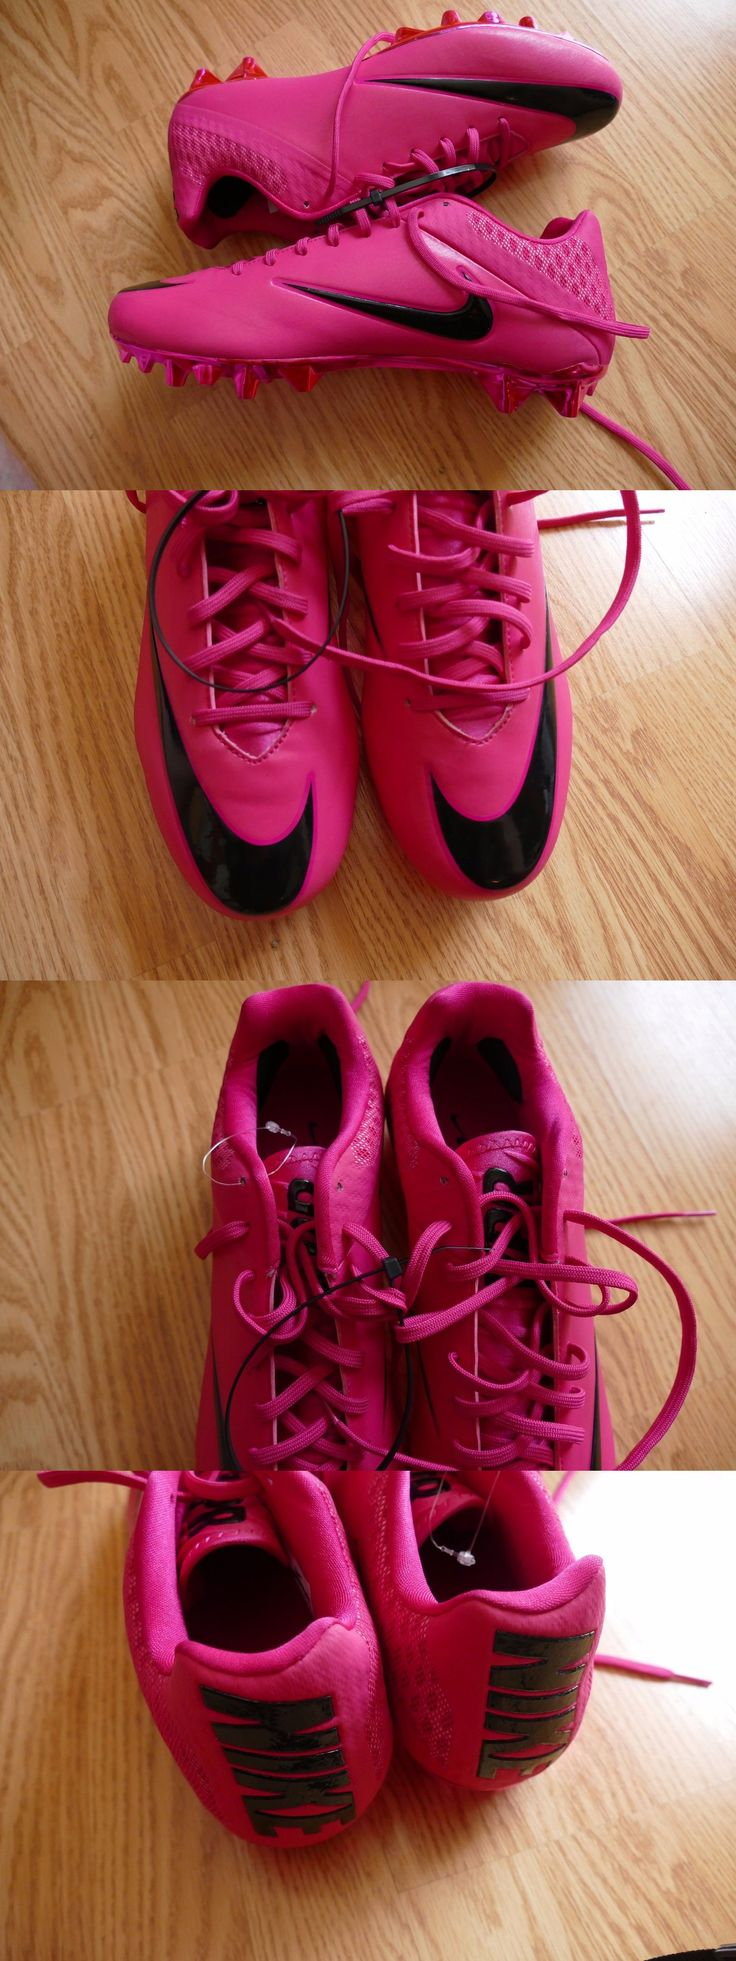 Men 159116: Nike Vapor Speed Low Pink Bca 884807 606 Untouchable Football Cleats Size 12.5 -> BUY IT NOW ONLY: $53.99 on eBay!